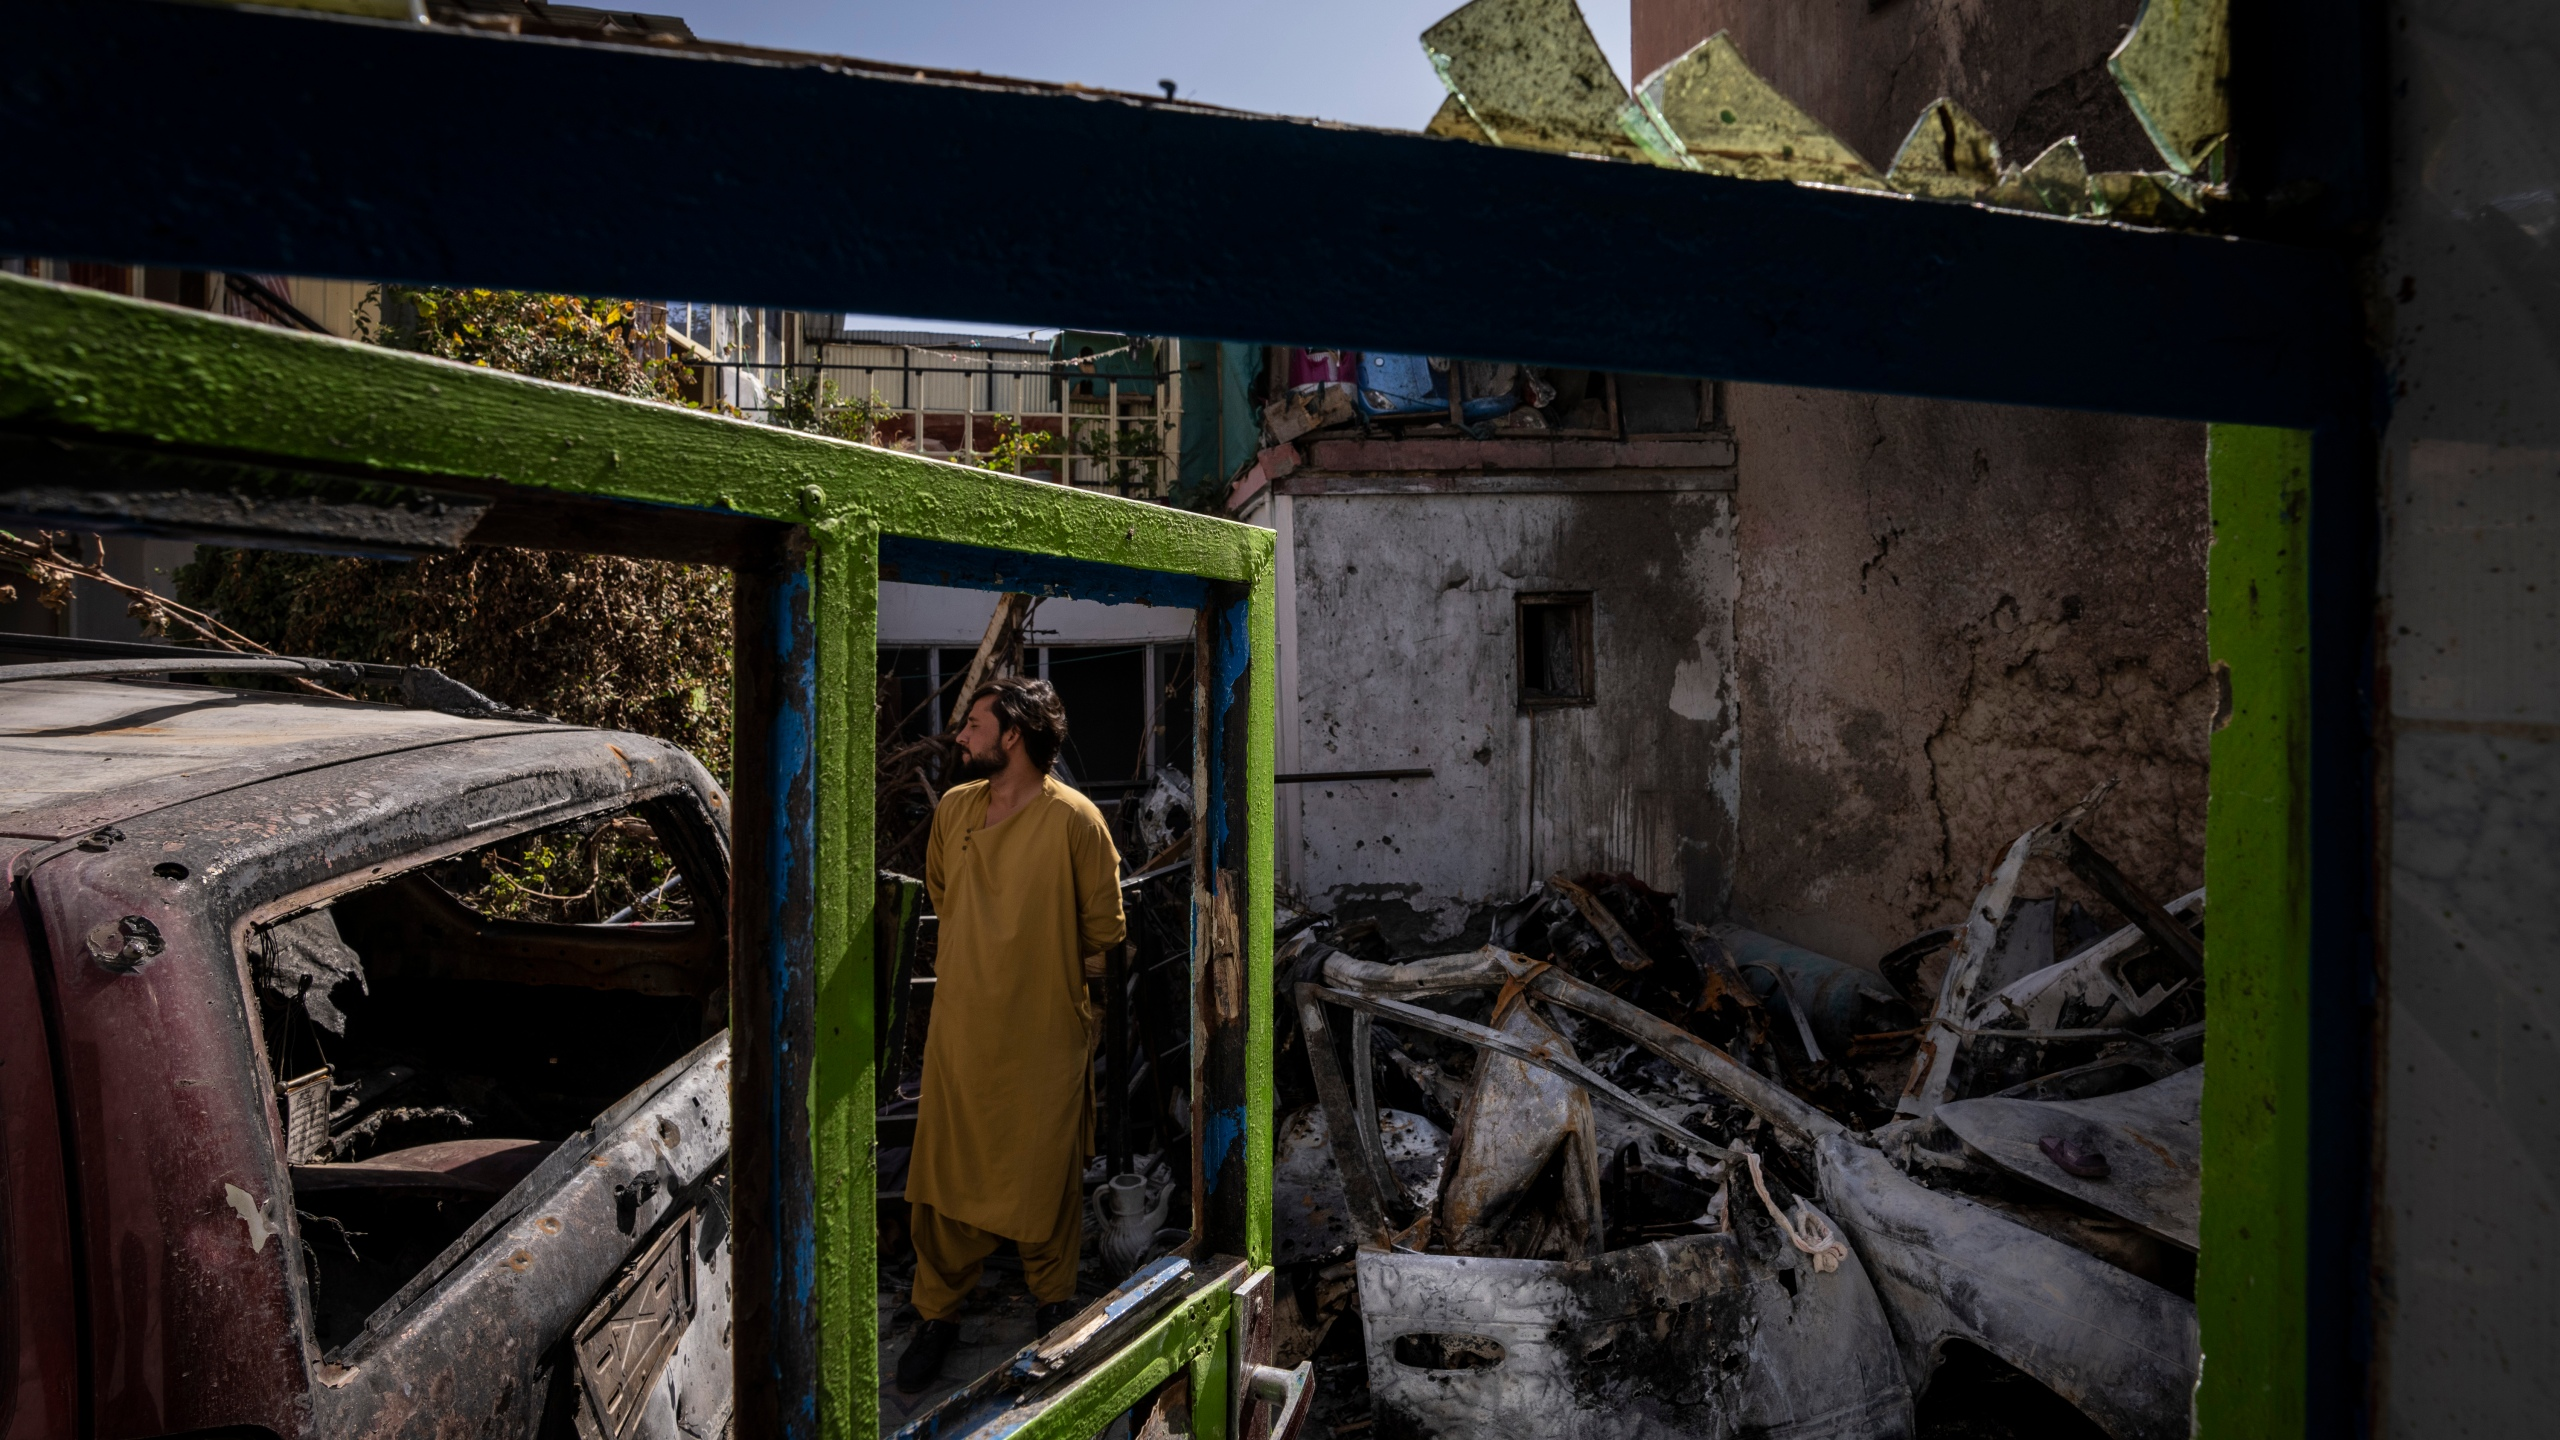 An Afghan inspects the damage of Ahmadi family house in Kabul, Afghanistan, on Sept. 13, 2021. Zemerai Ahmadi, the Afghan man who was killed in a U.S. drone strike last month, was an enthusiastic and beloved longtime employee at an American humanitarian organization, his colleagues say. (Bernat Armangue / Associated Press)